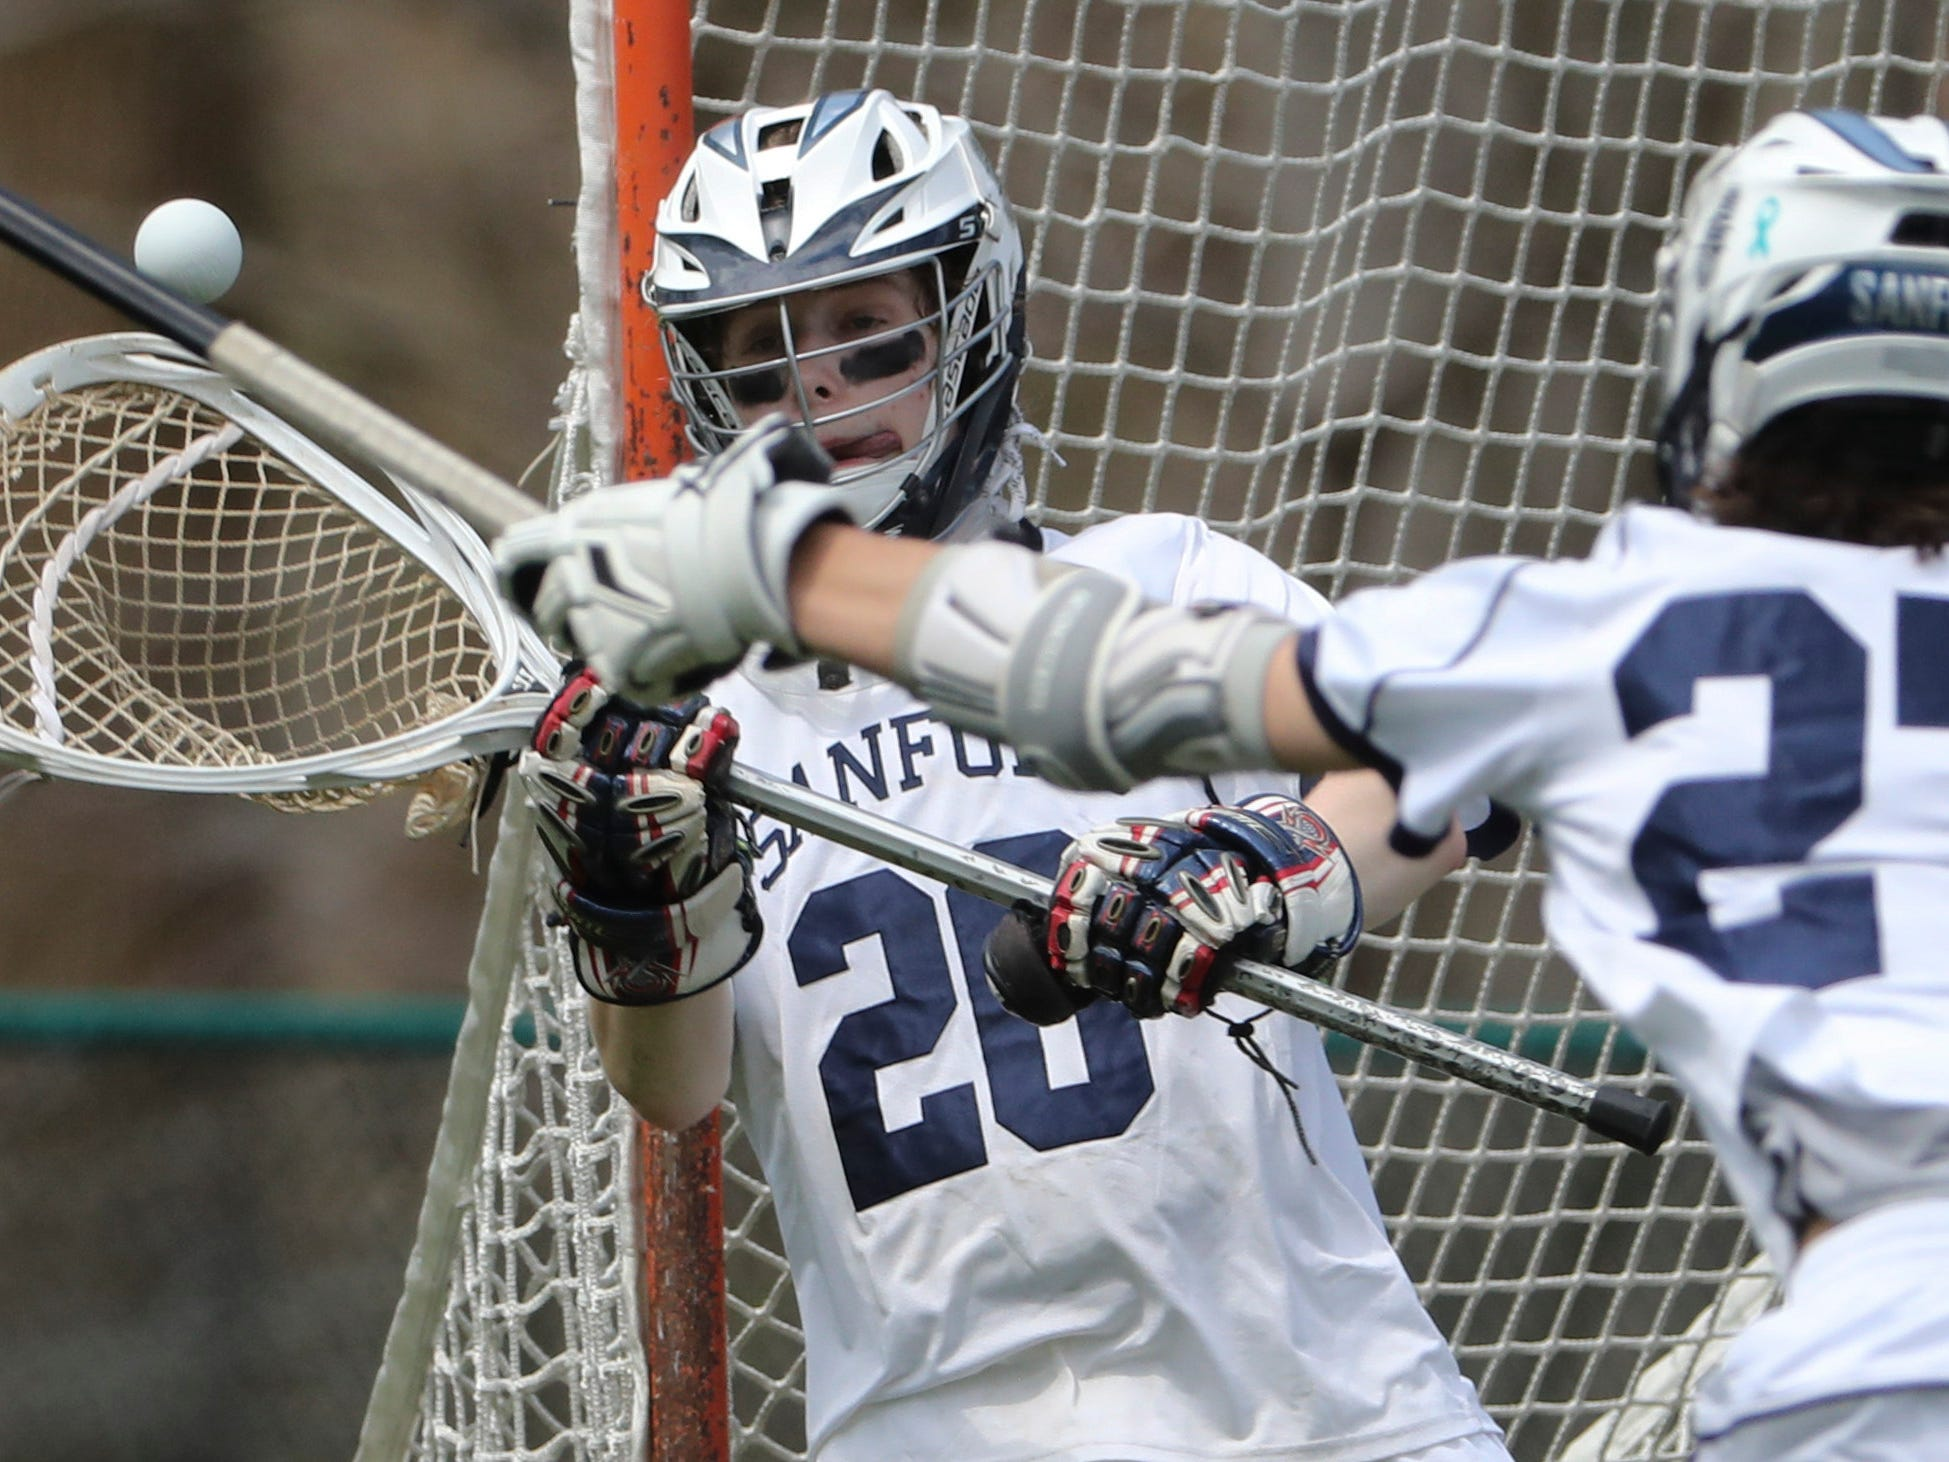 Sanford's Owen Goodier (left) and Nathan LaMonte move to stop a shot in the second half of Sanford's 12-10 win Saturday.